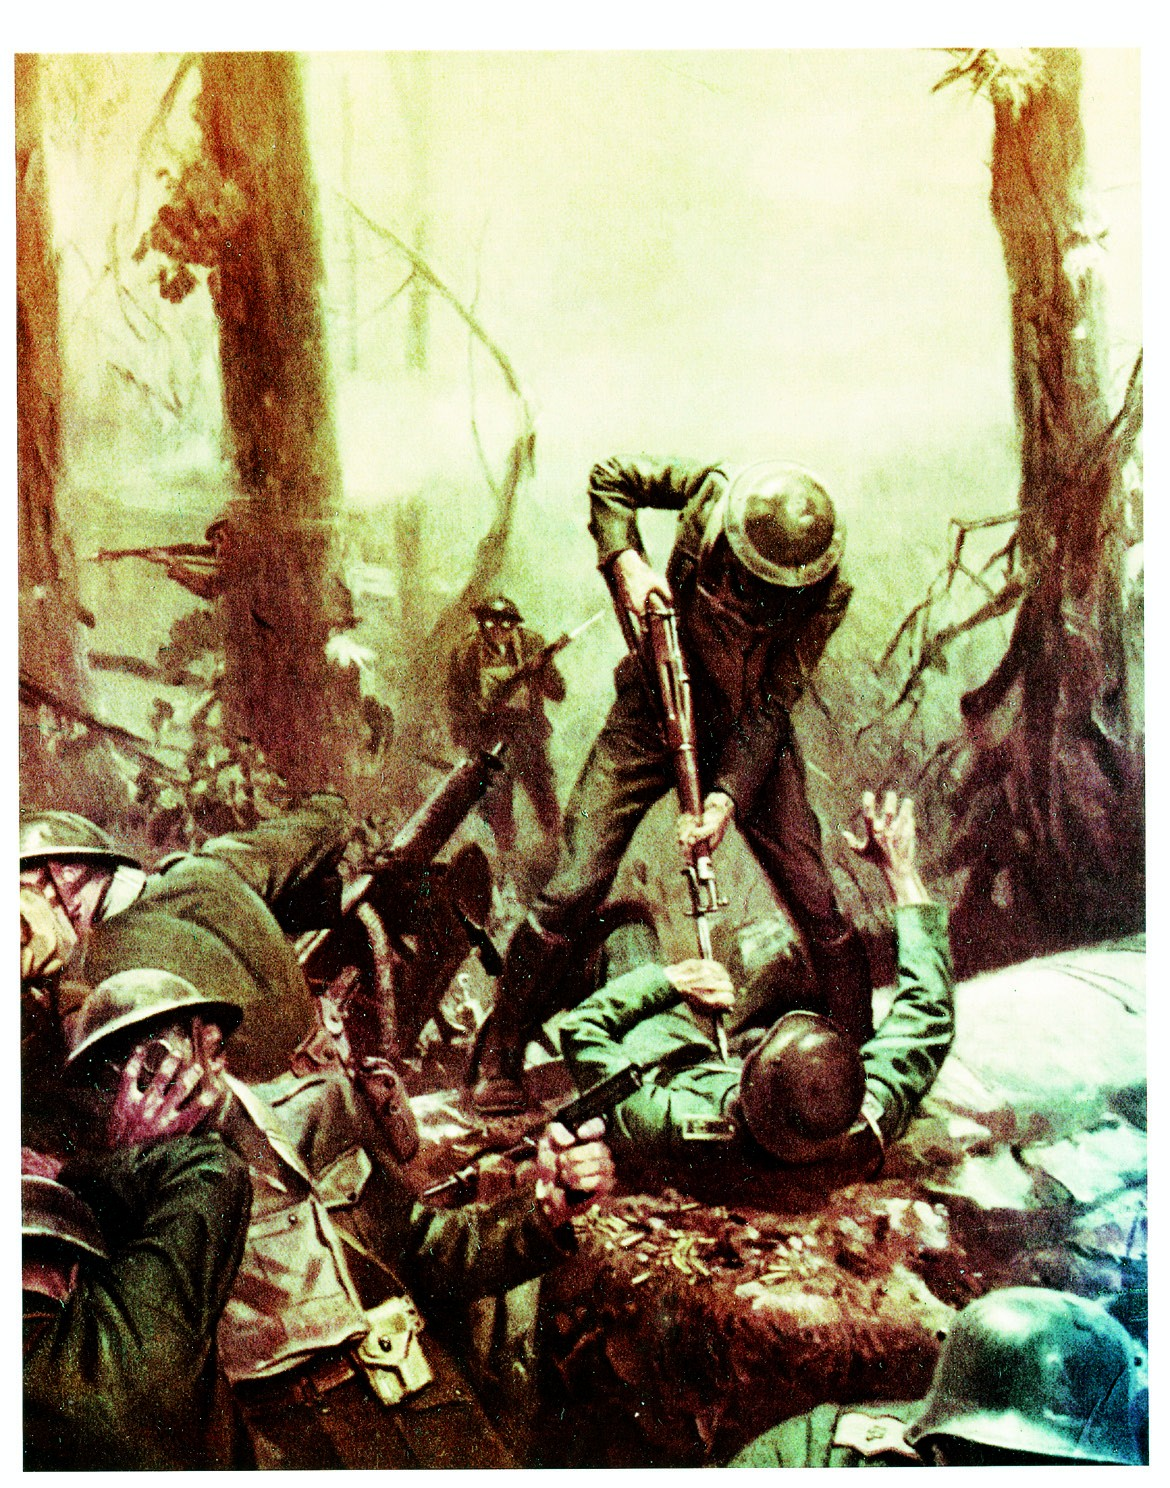 After decades of struggling for survival as a service, the advance of  marines into Belleau